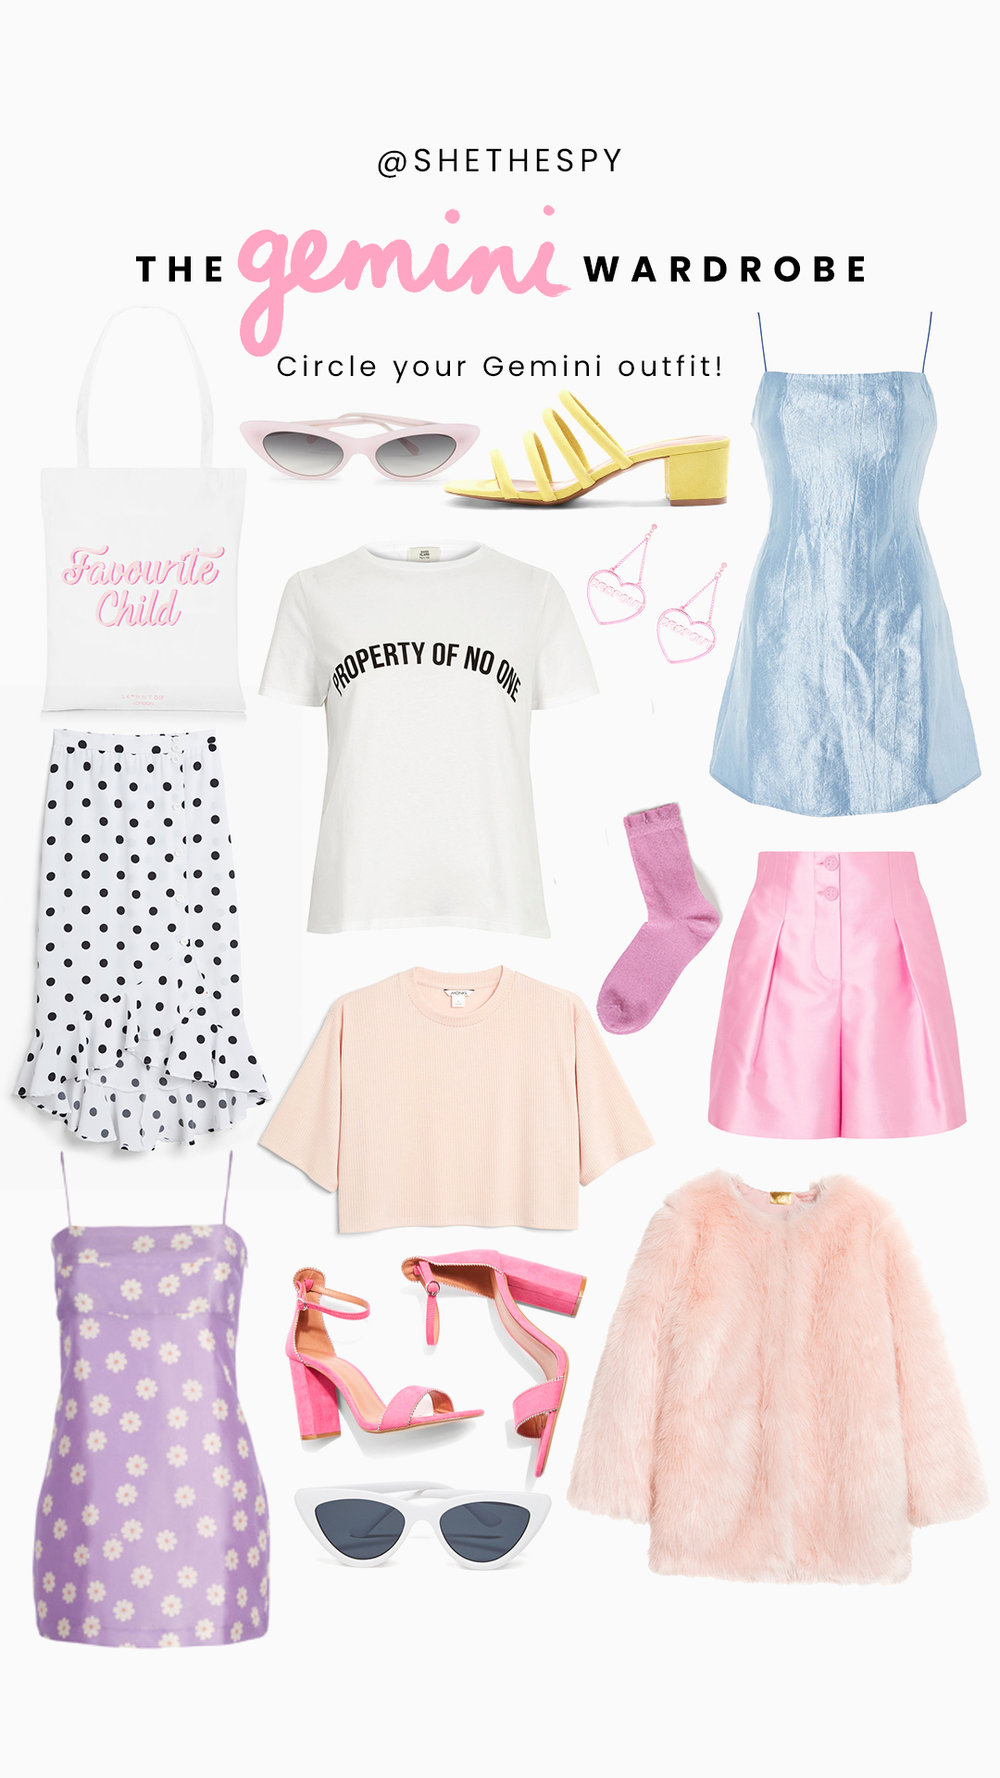 Shop Gemini - Bag: Skinny DipPink sunglasses: BandoYellow shoes: TopshopEarrings: Skinny DipBlue Dress: TopshopPolka dot skirt: MonkiPink shorts: Giorgio ArmaniSocks: MonkiWhite tee: River IslandPeach tee: MonkiFaux fur jacket: H&MPurple dress: Realisation ParPink shoes: TopshopWhite sunglasses: Bando